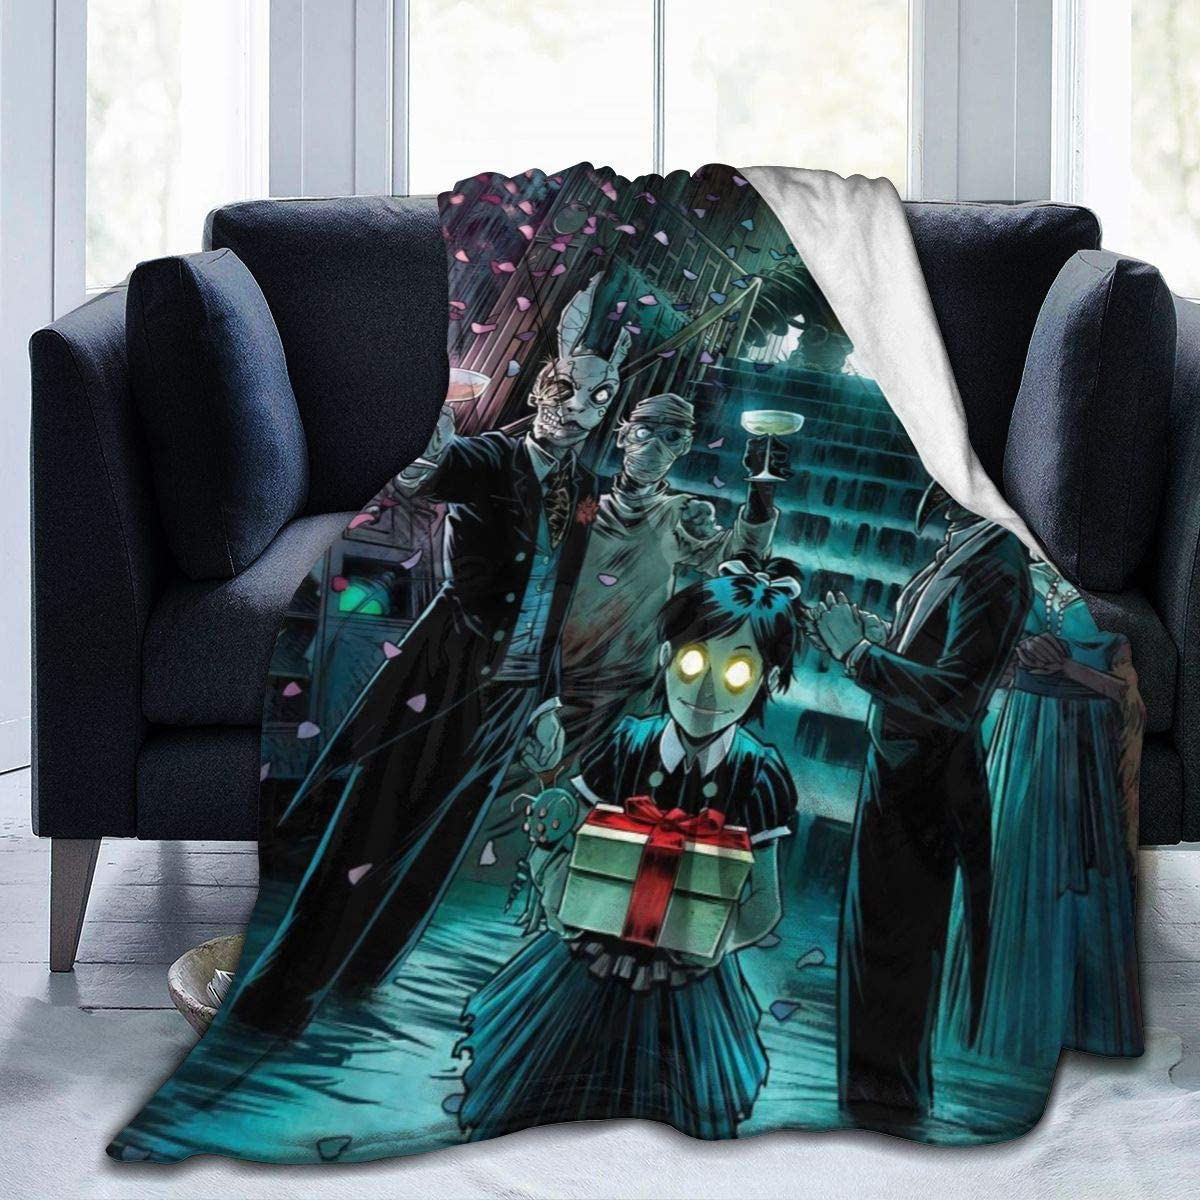 MillicentCob Bioshock Ultra-Soft Max 45% OFF Japan's largest assortment Micro Fleece Blanket W Soft and